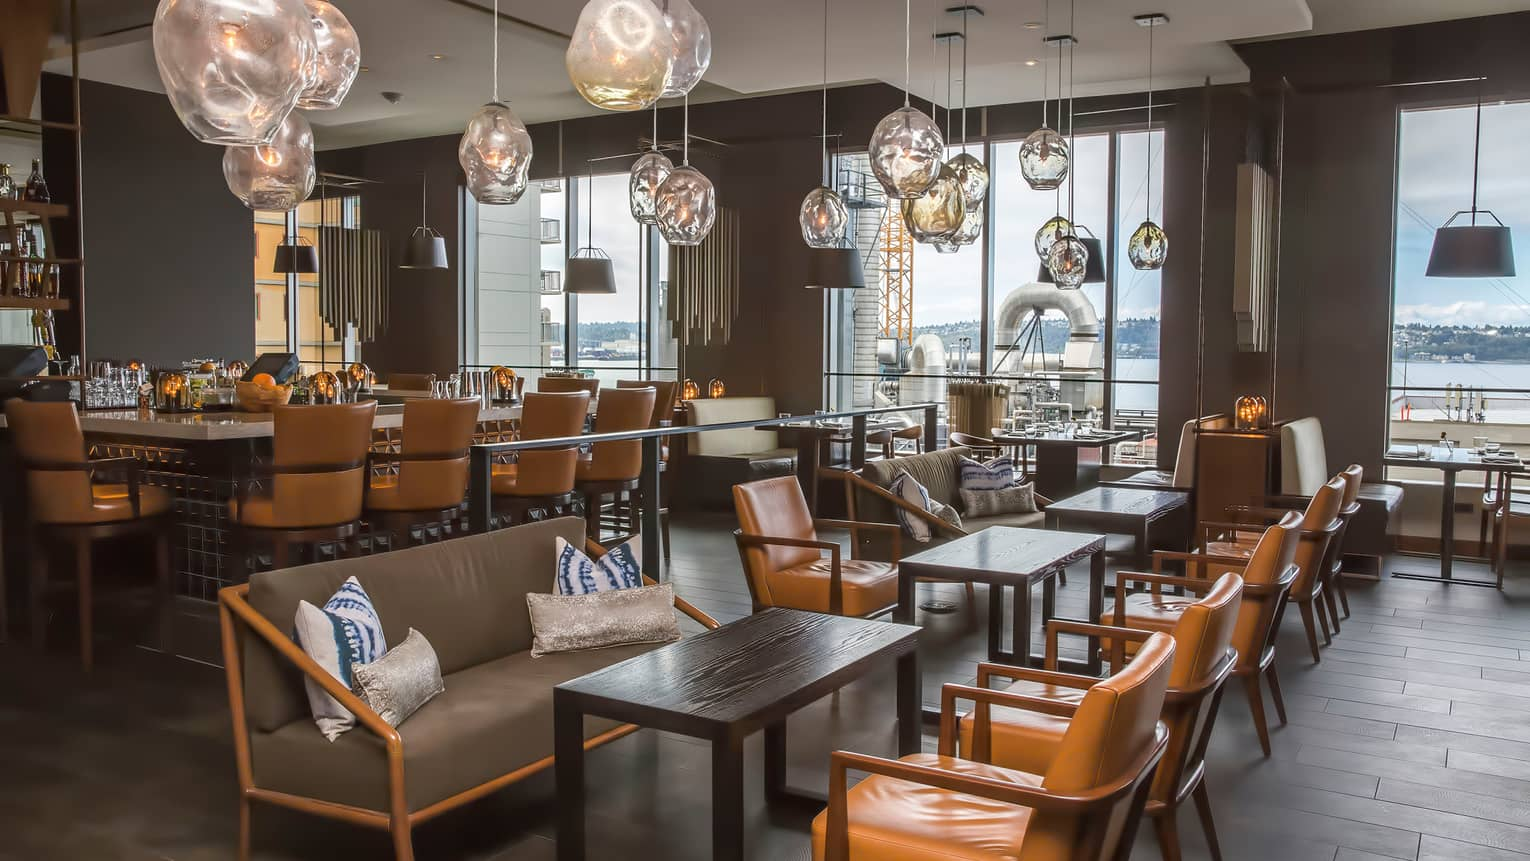 Amber-tinged glass lamps hang above Goldfinch Tavern dining tables, leather chairs